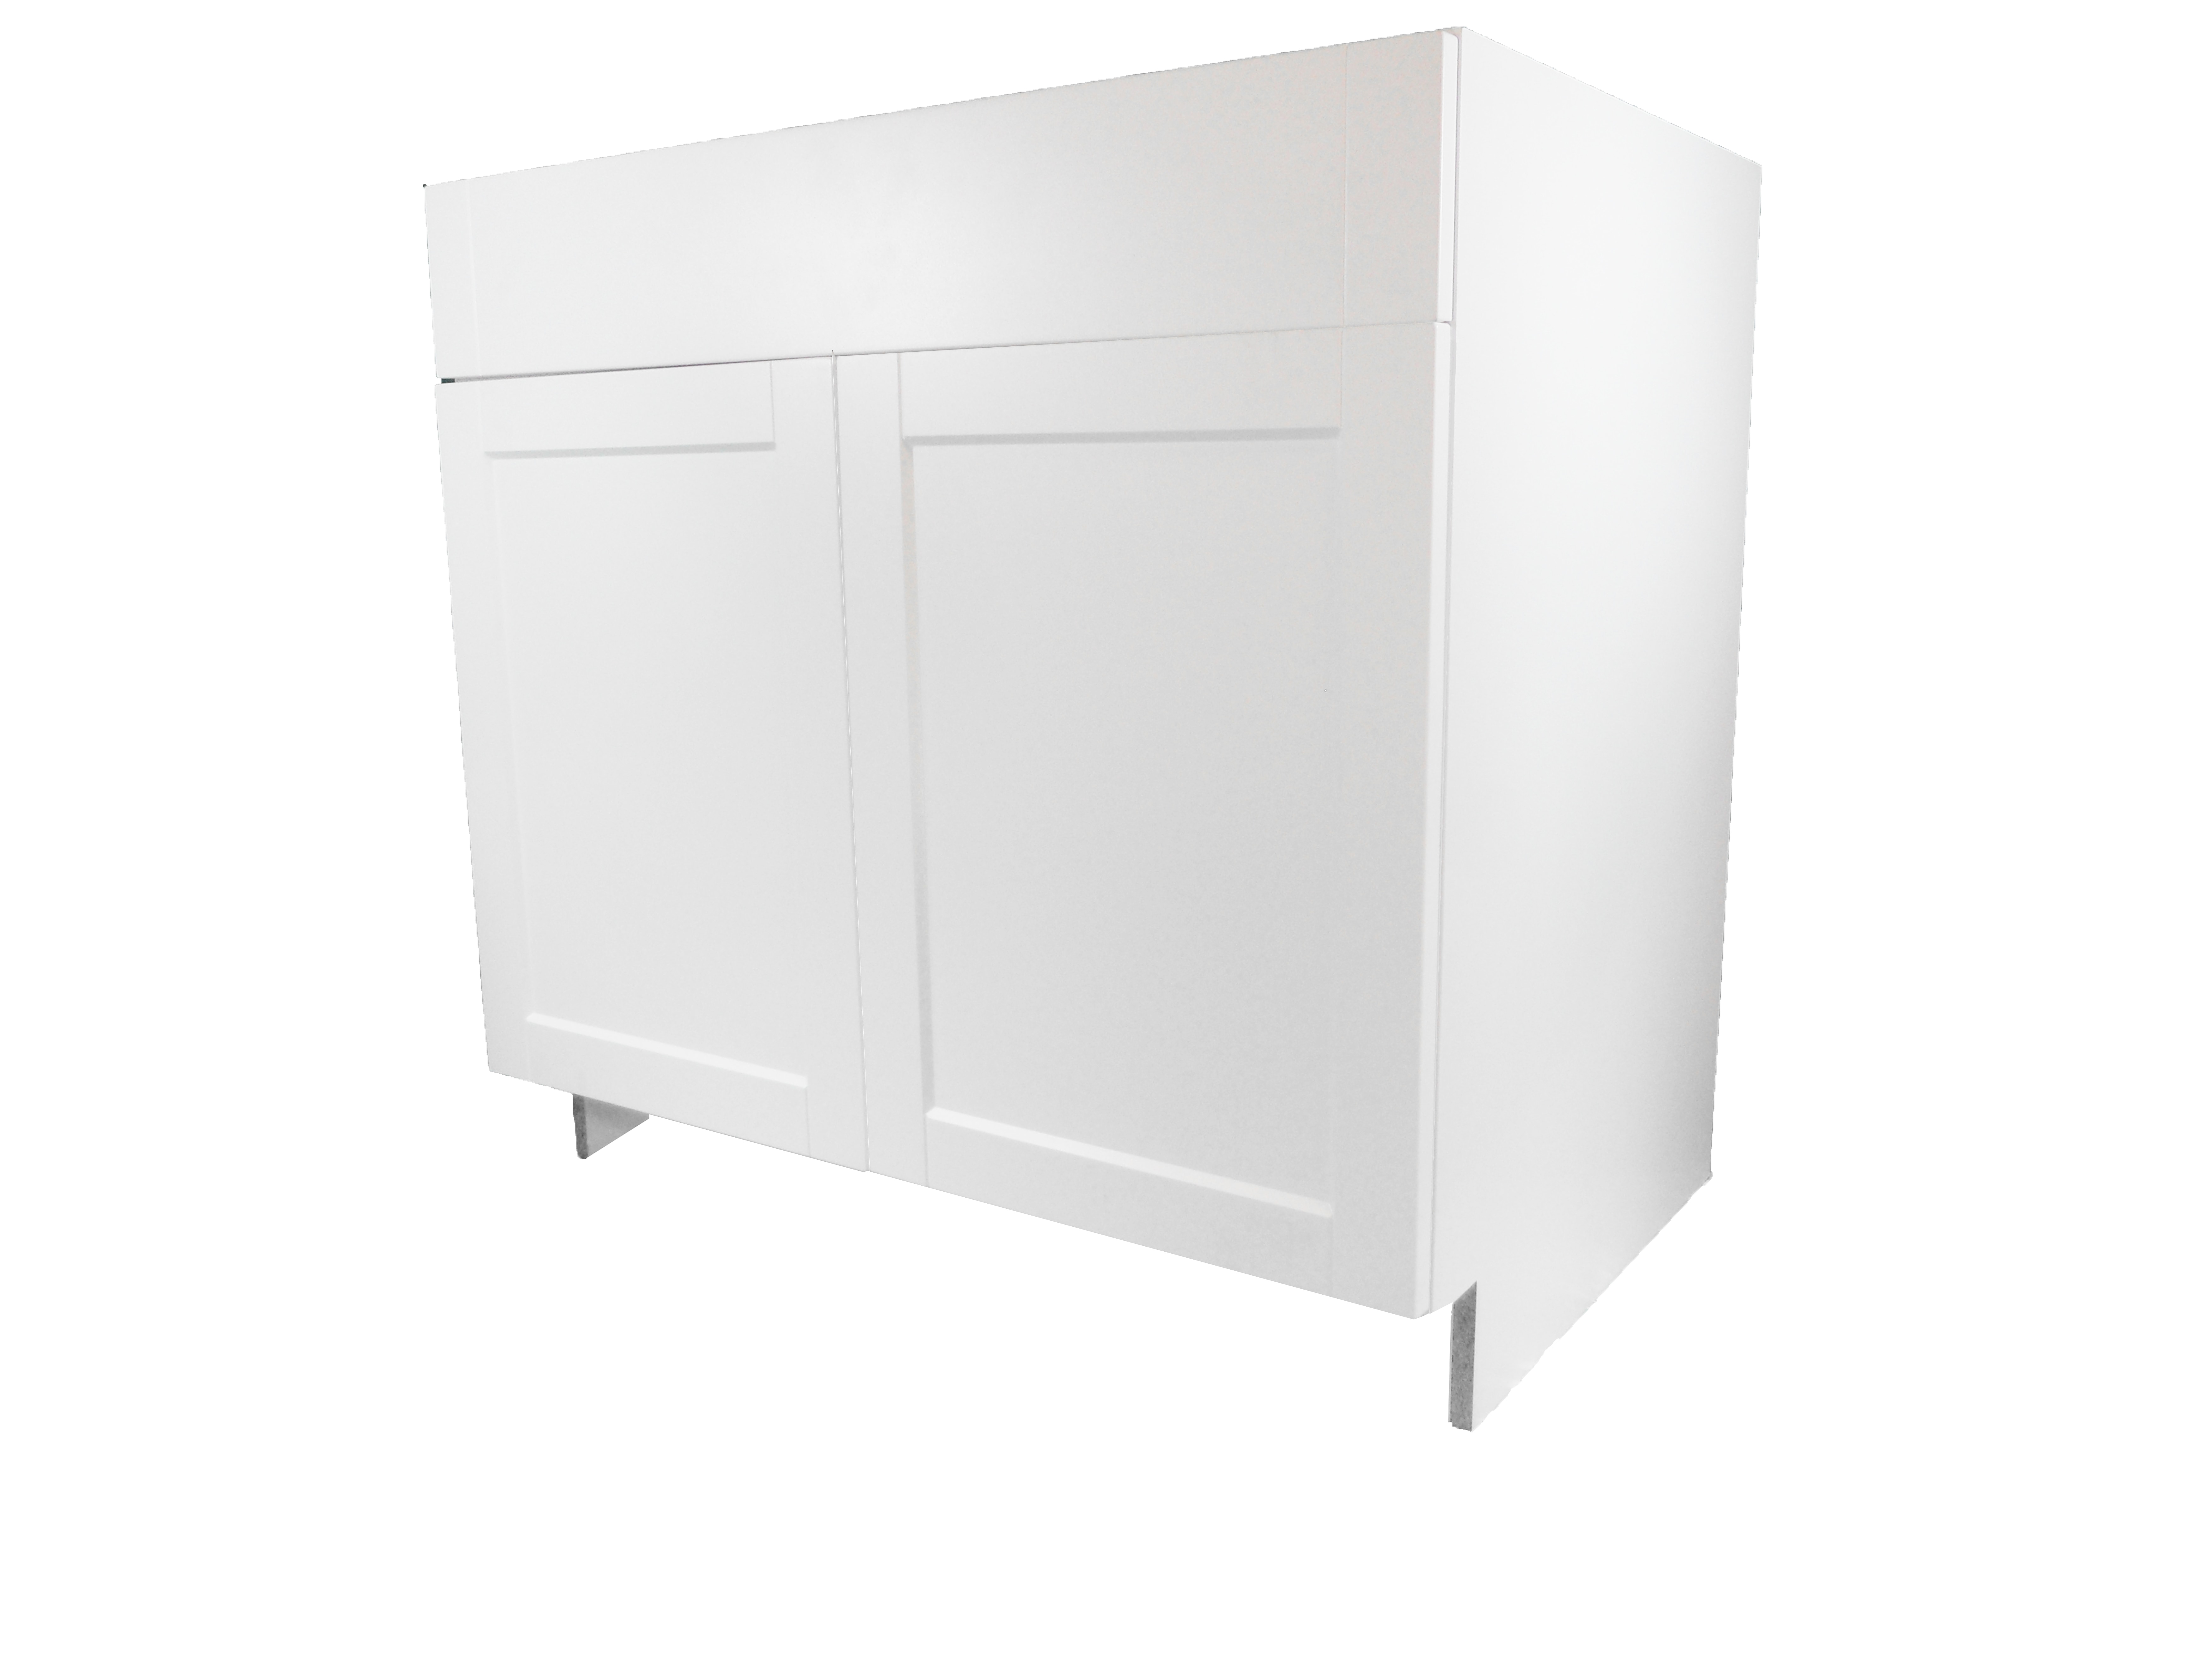 Base Cabinet with Drawer/2 Door / Flat Panel White / 36 Solaire White 0